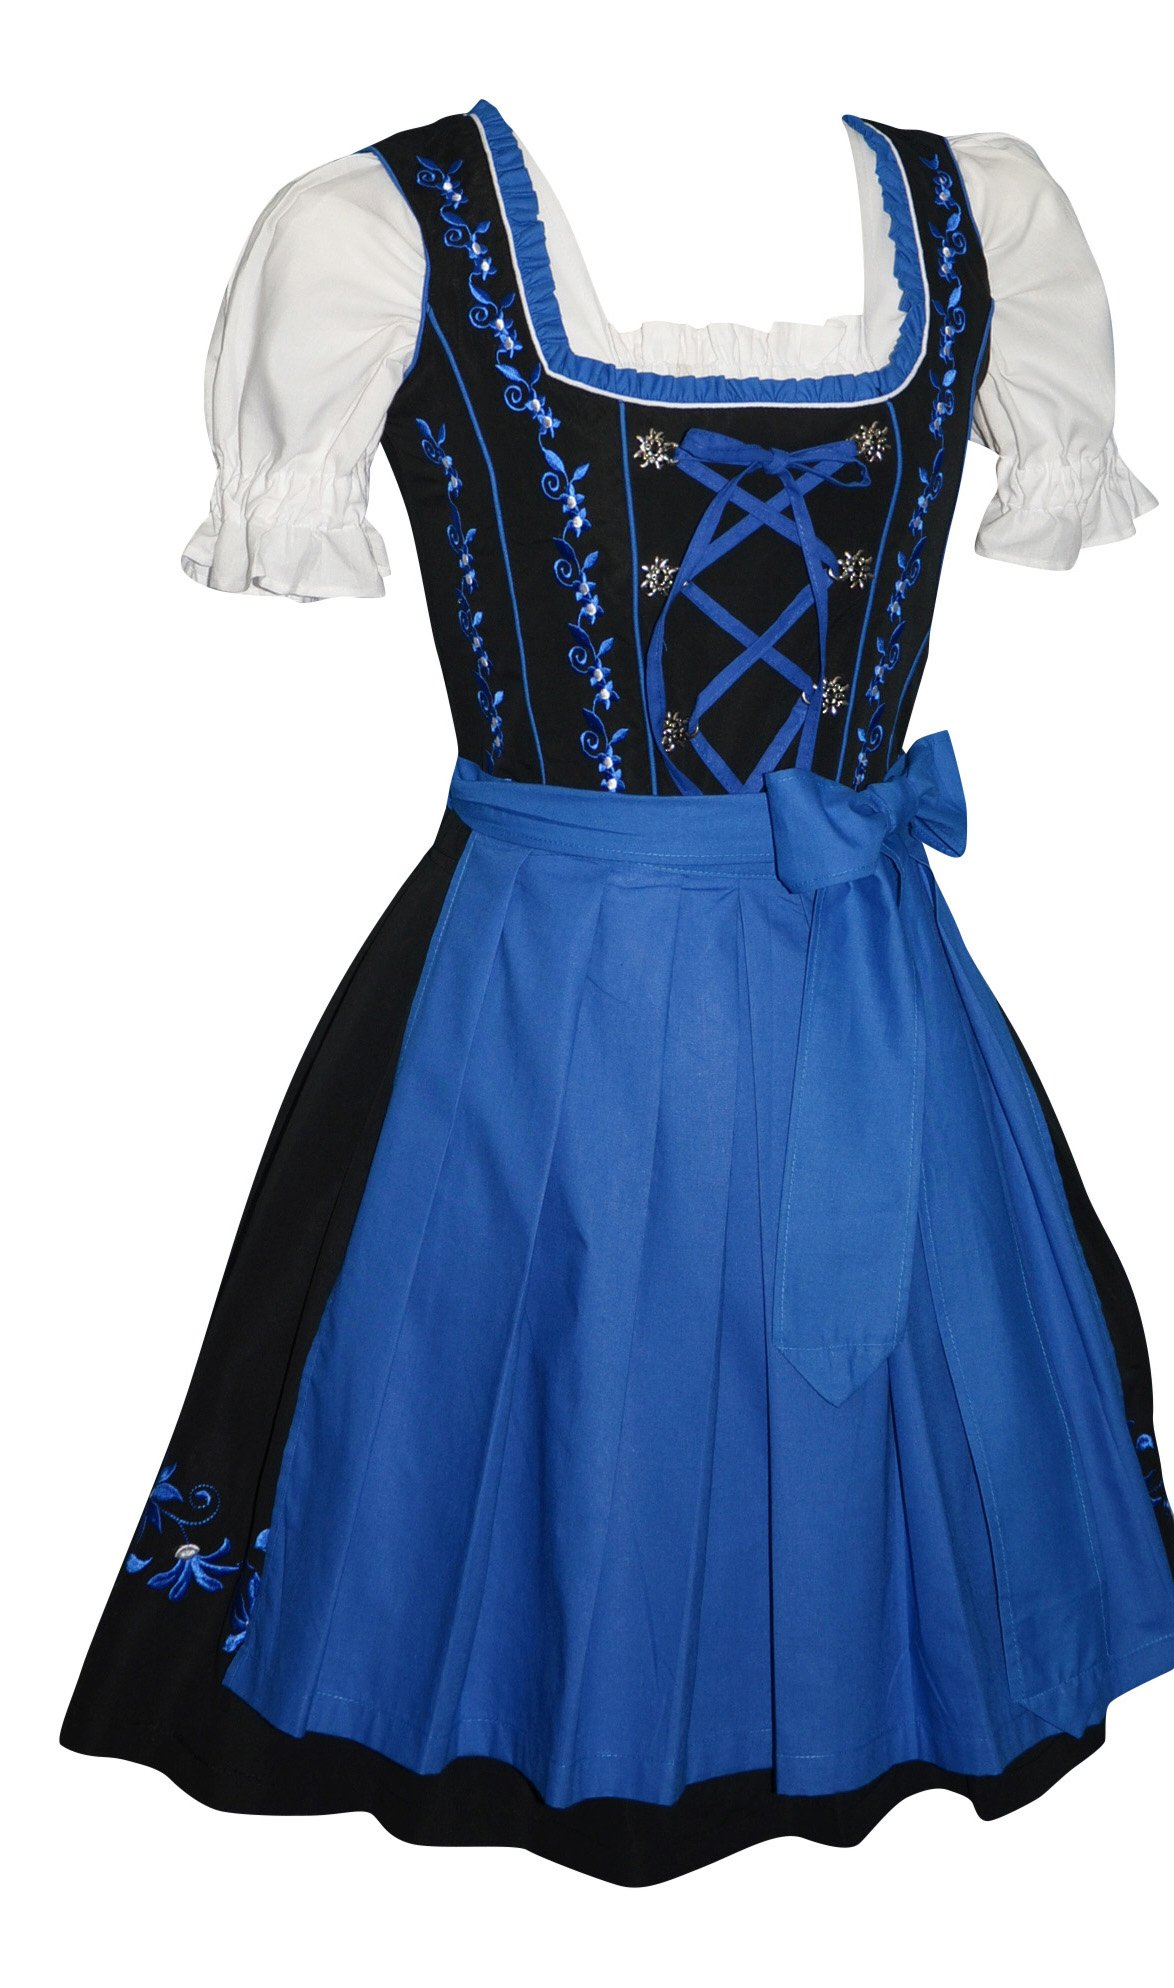 3-Piece Short German Party Oktoberfest Waitress Dress (12)